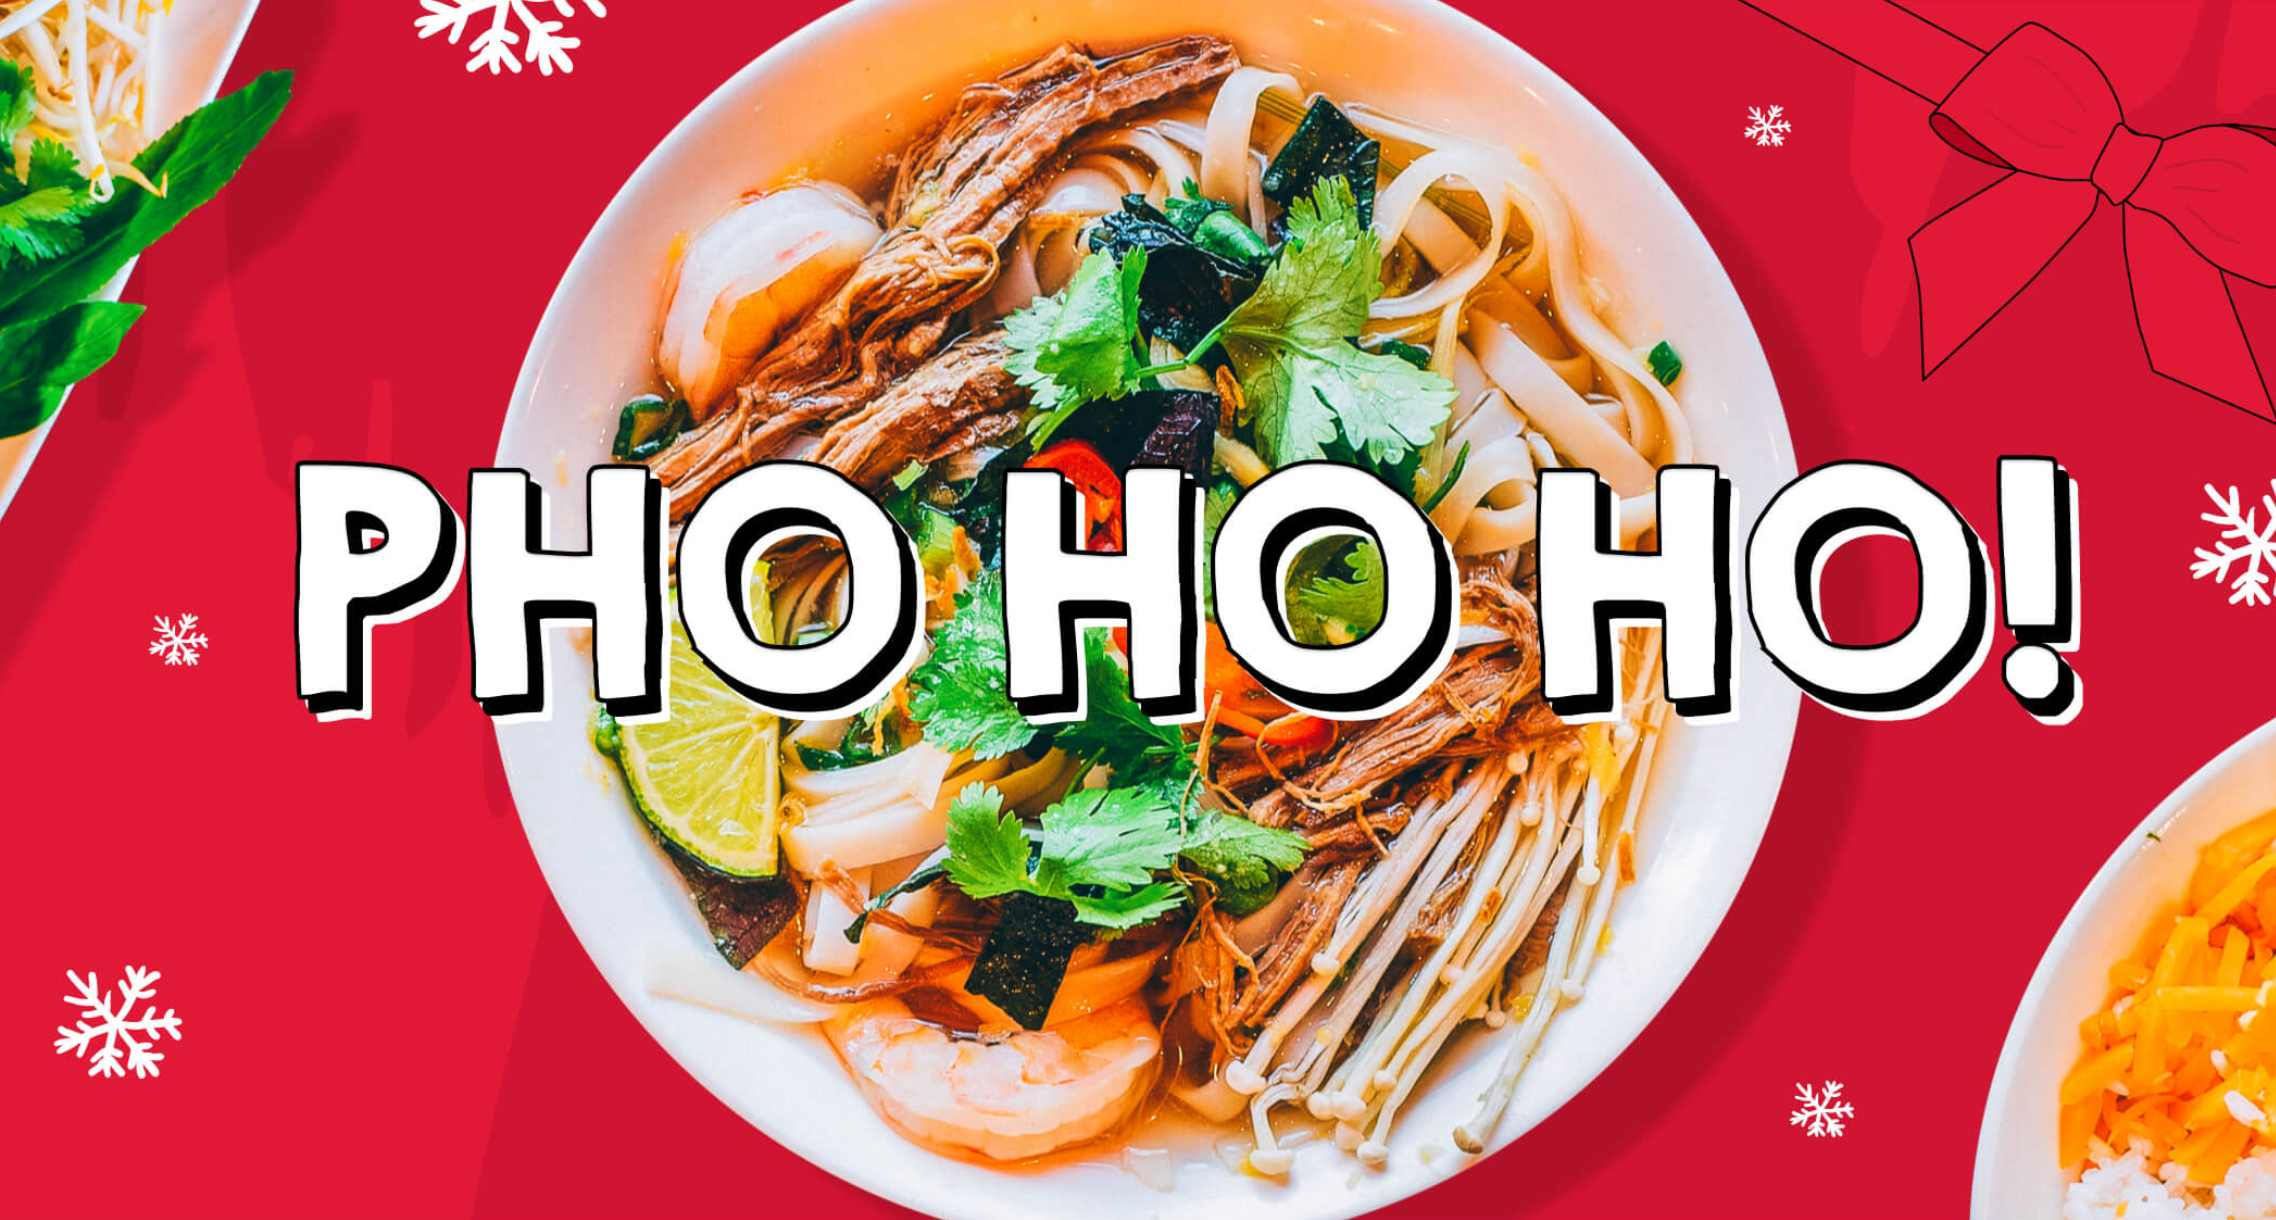 Vietnamese chain Pho Christmas menu